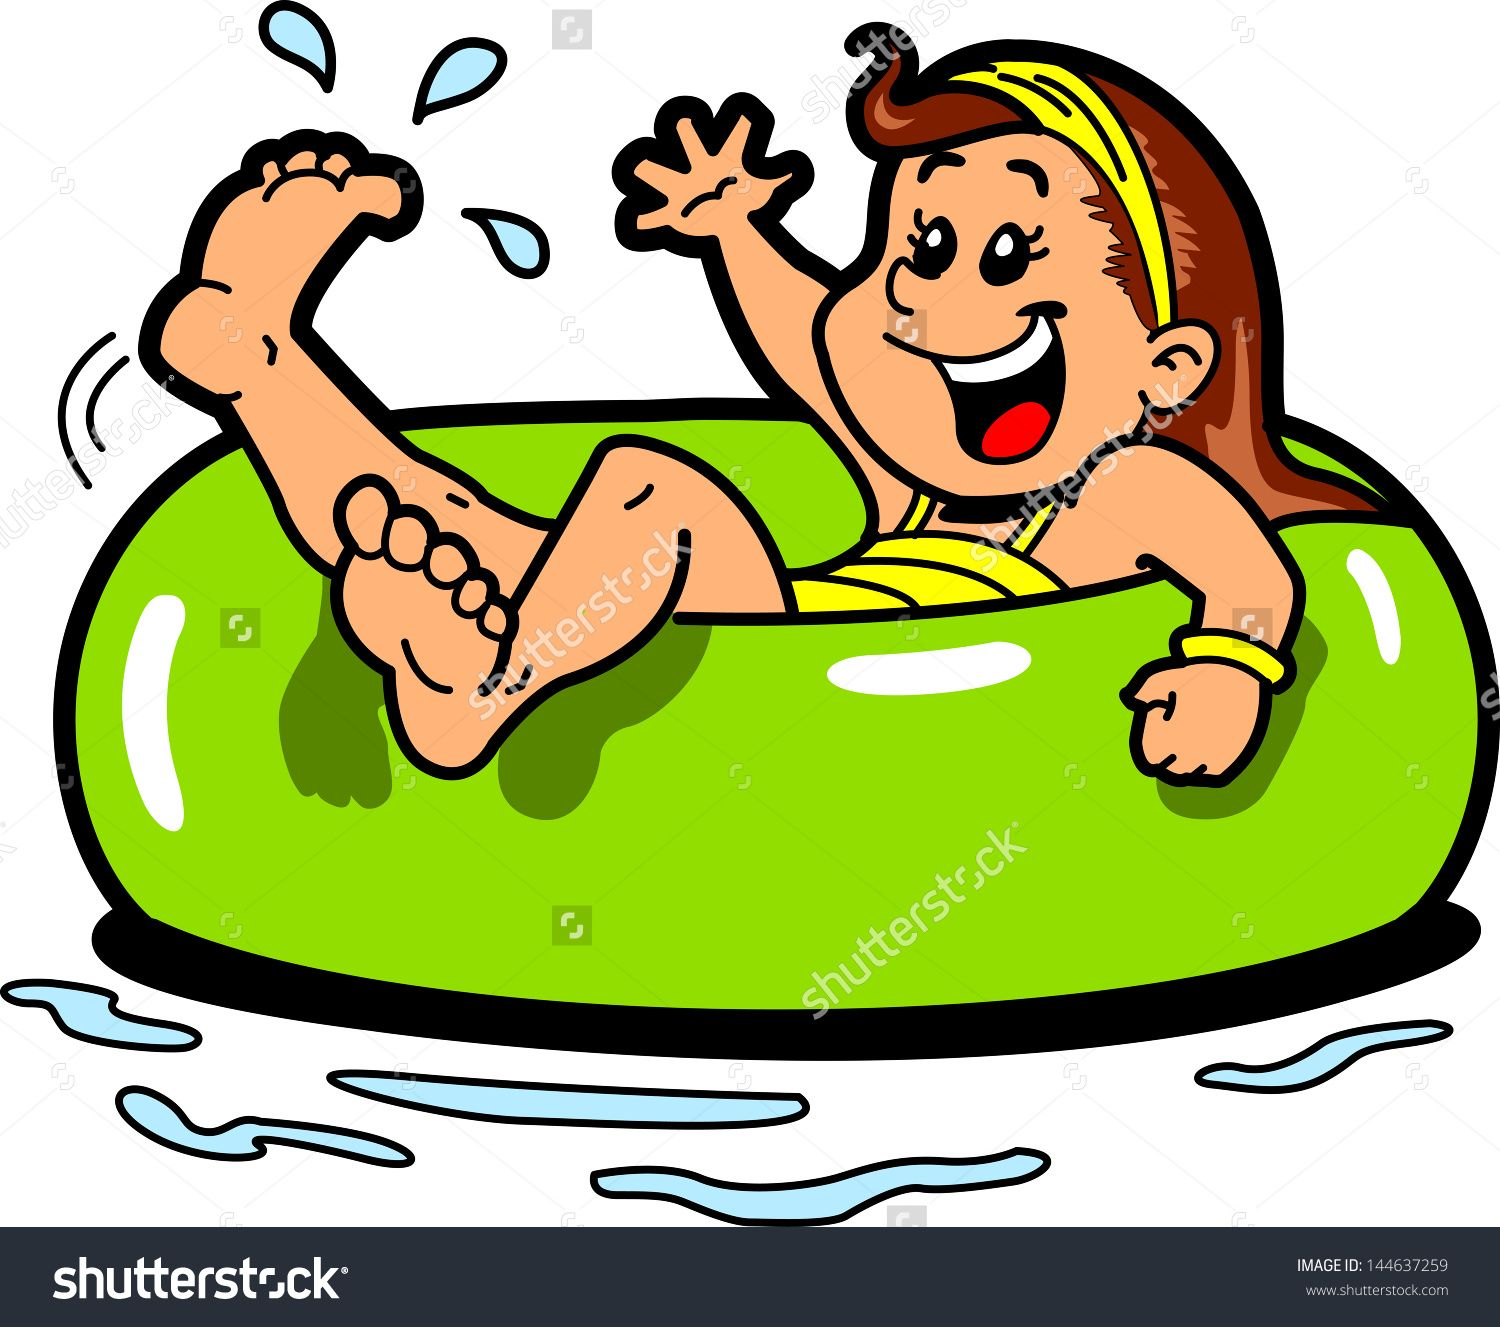 Inner tube clipart free for commercial use clip free Image result for Boat Water Tubing Clip Art   VBS Ideals ... clip free